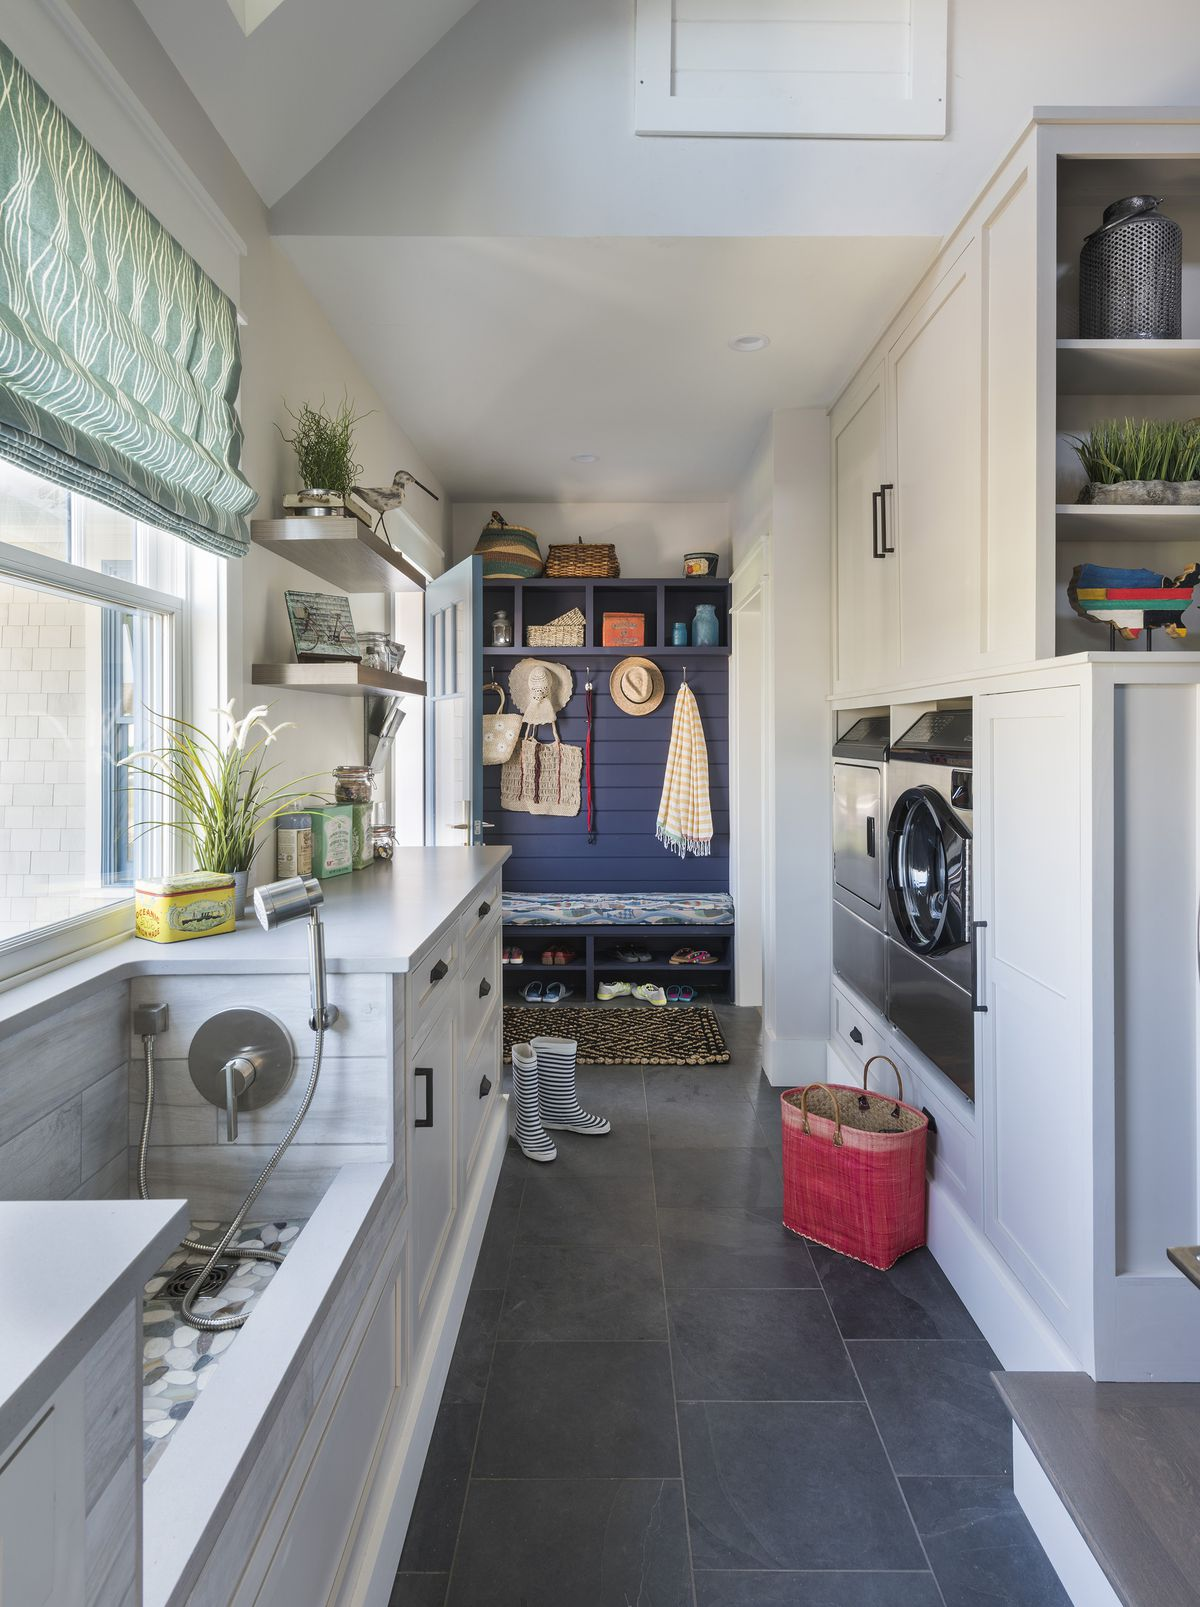 """<p>The side entry leads to a combination mudroom, laundry room, and pet-washing station.</p> <p><em>Paint: </em>Ceiling and trim in <a href=""""https://www.olympic.com/paint-colors/delicate-white-ol107"""" target=""""_blank"""">Delicate White</a>, <a href=""""https://www.olympic.com/paint-colors/swirling-smoke-ol196, walls in Shark https://www.olympic.com/paint-colors/shark-ol222"""" target=""""_blank"""">Cabinets in Swirling Smoke</a>, cubbies in <a href=""""https://www.olympic.com/paint-colors/black-flame-ol7546"""" target"""